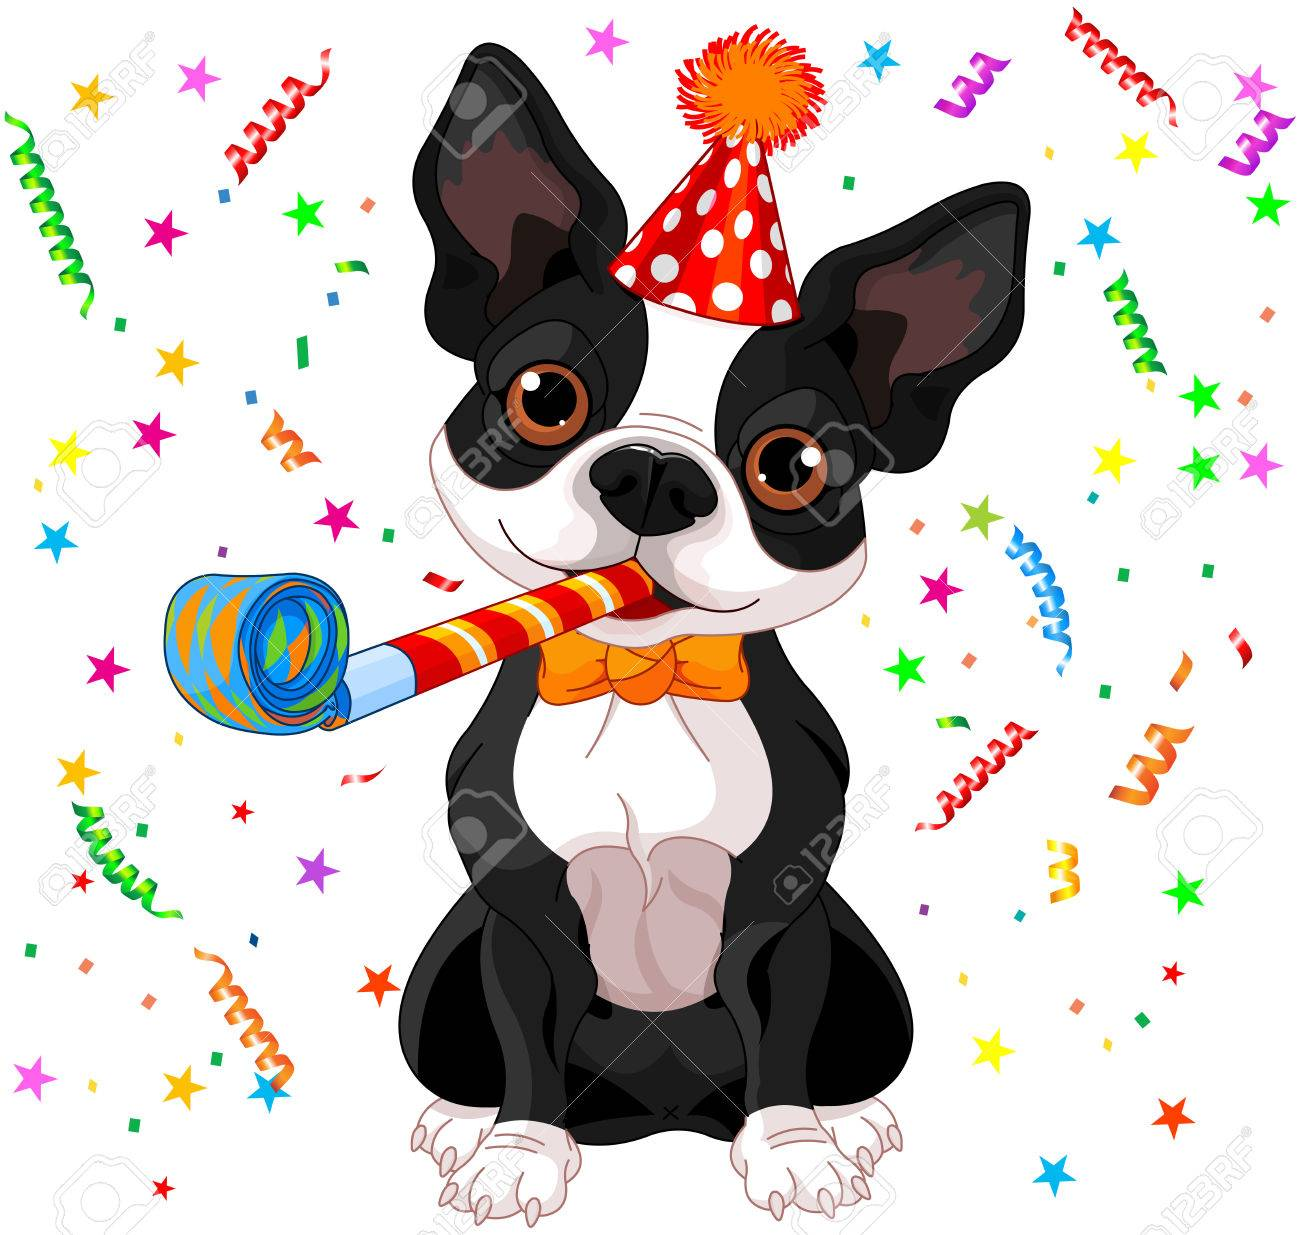 Maladie du pica 35588778-illustration-of-cute-boston-terrier-celebrating